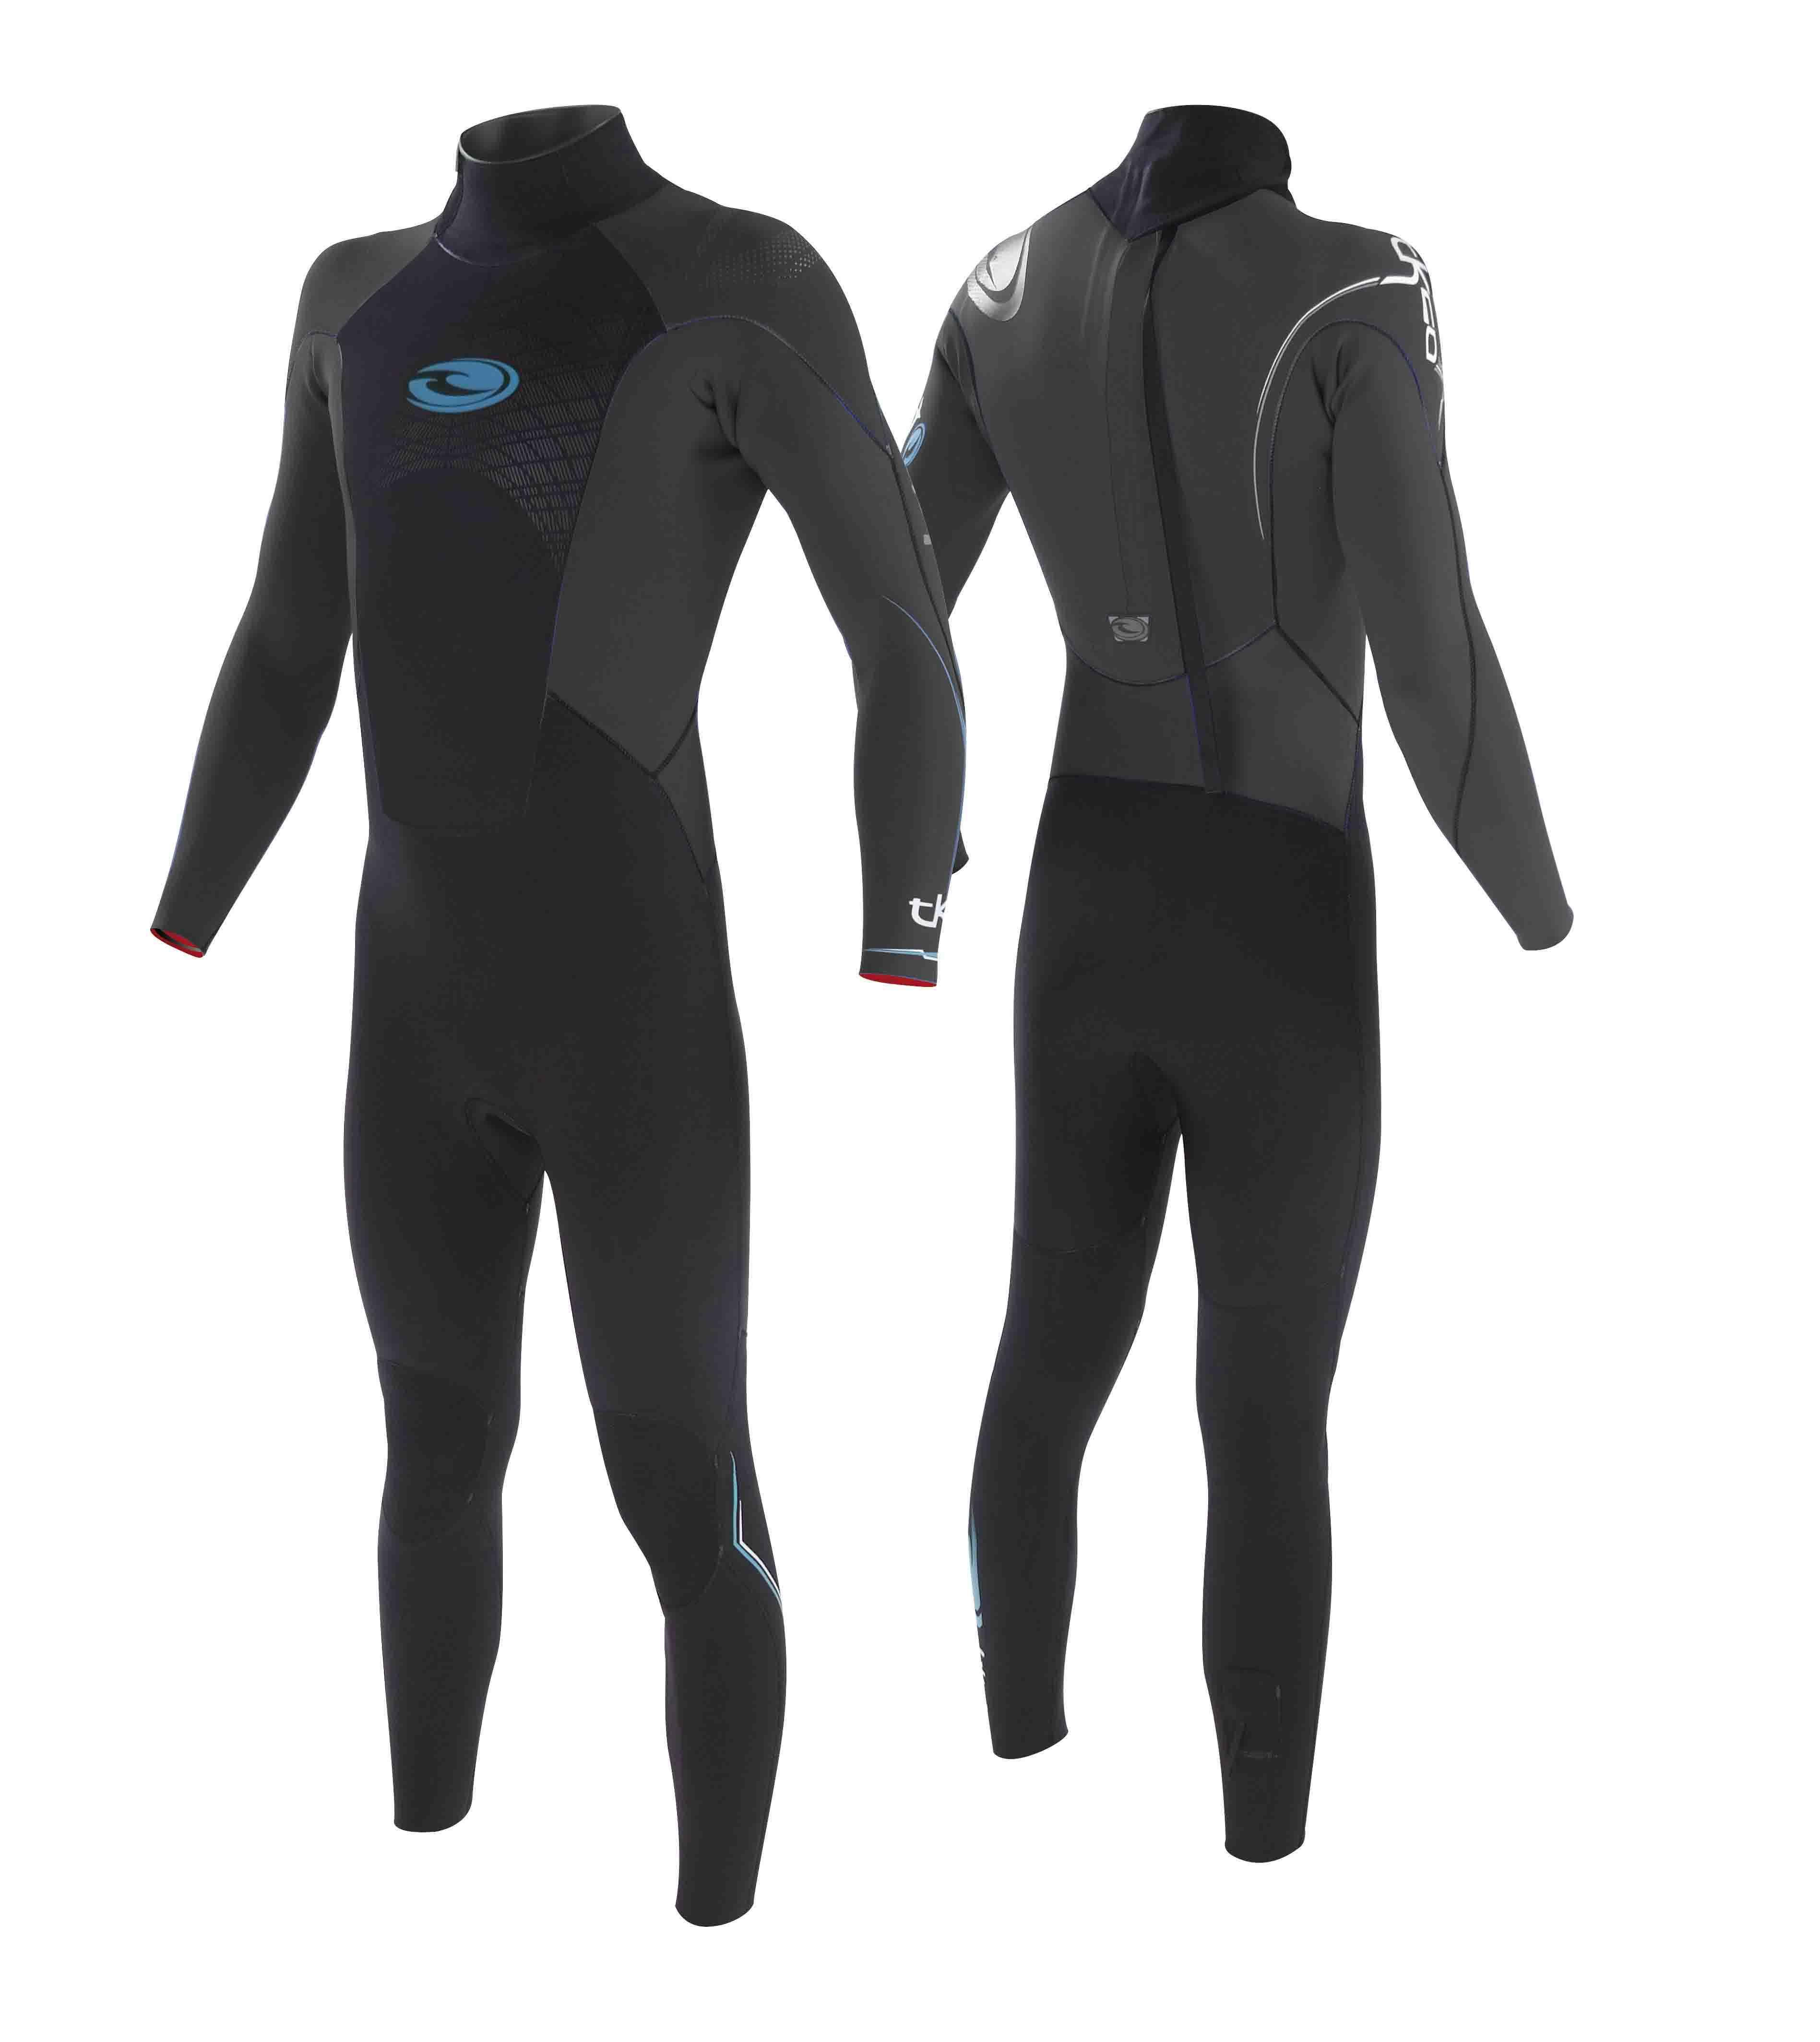 3a1ba91da7 Tiki Wetsuit Tech 20 - 3 2mm GBS Steamer - Grey  Blue